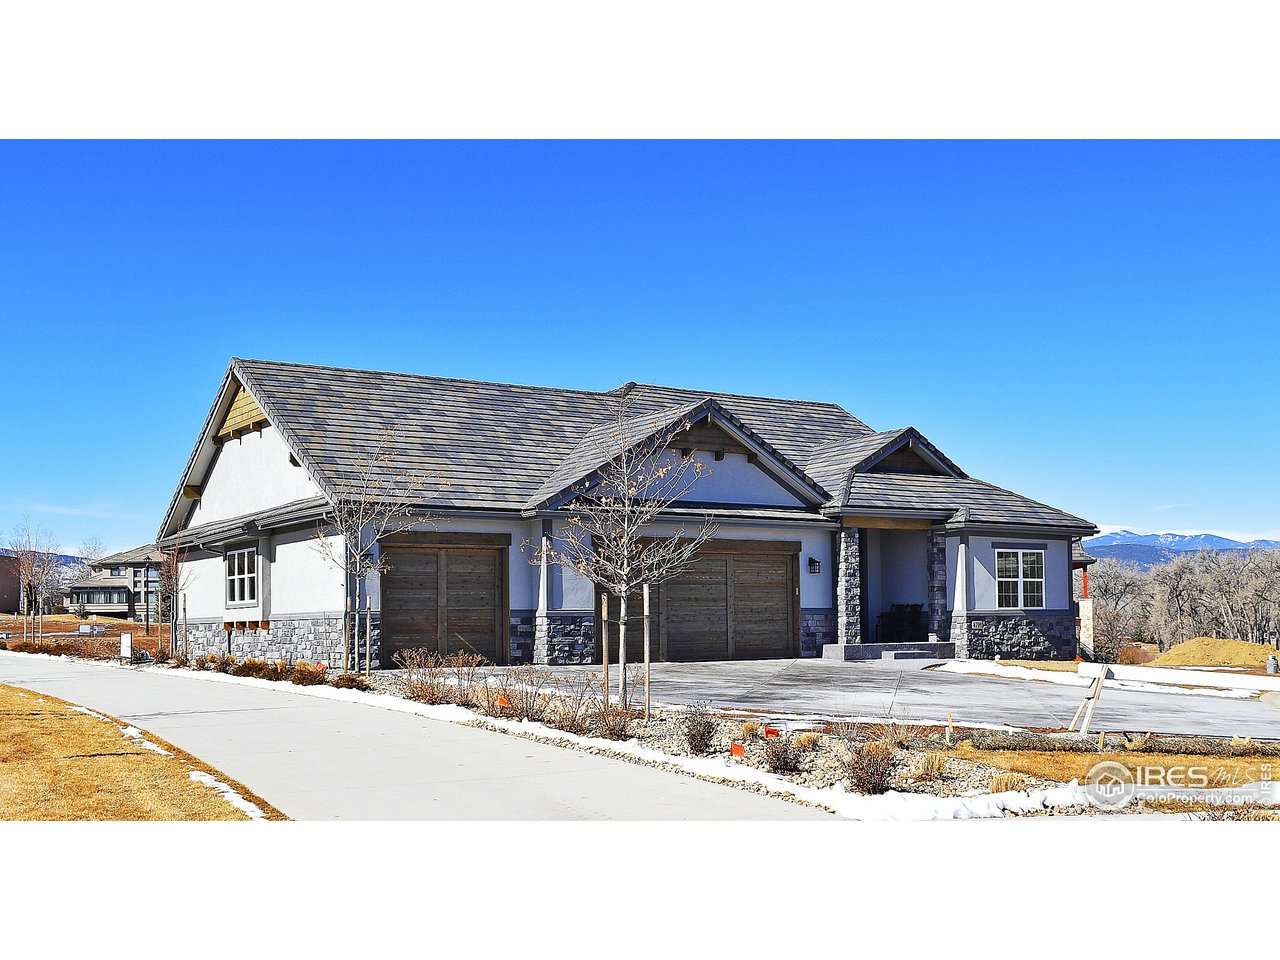 Stucco Siding, Tile Roof and Desireable Lot